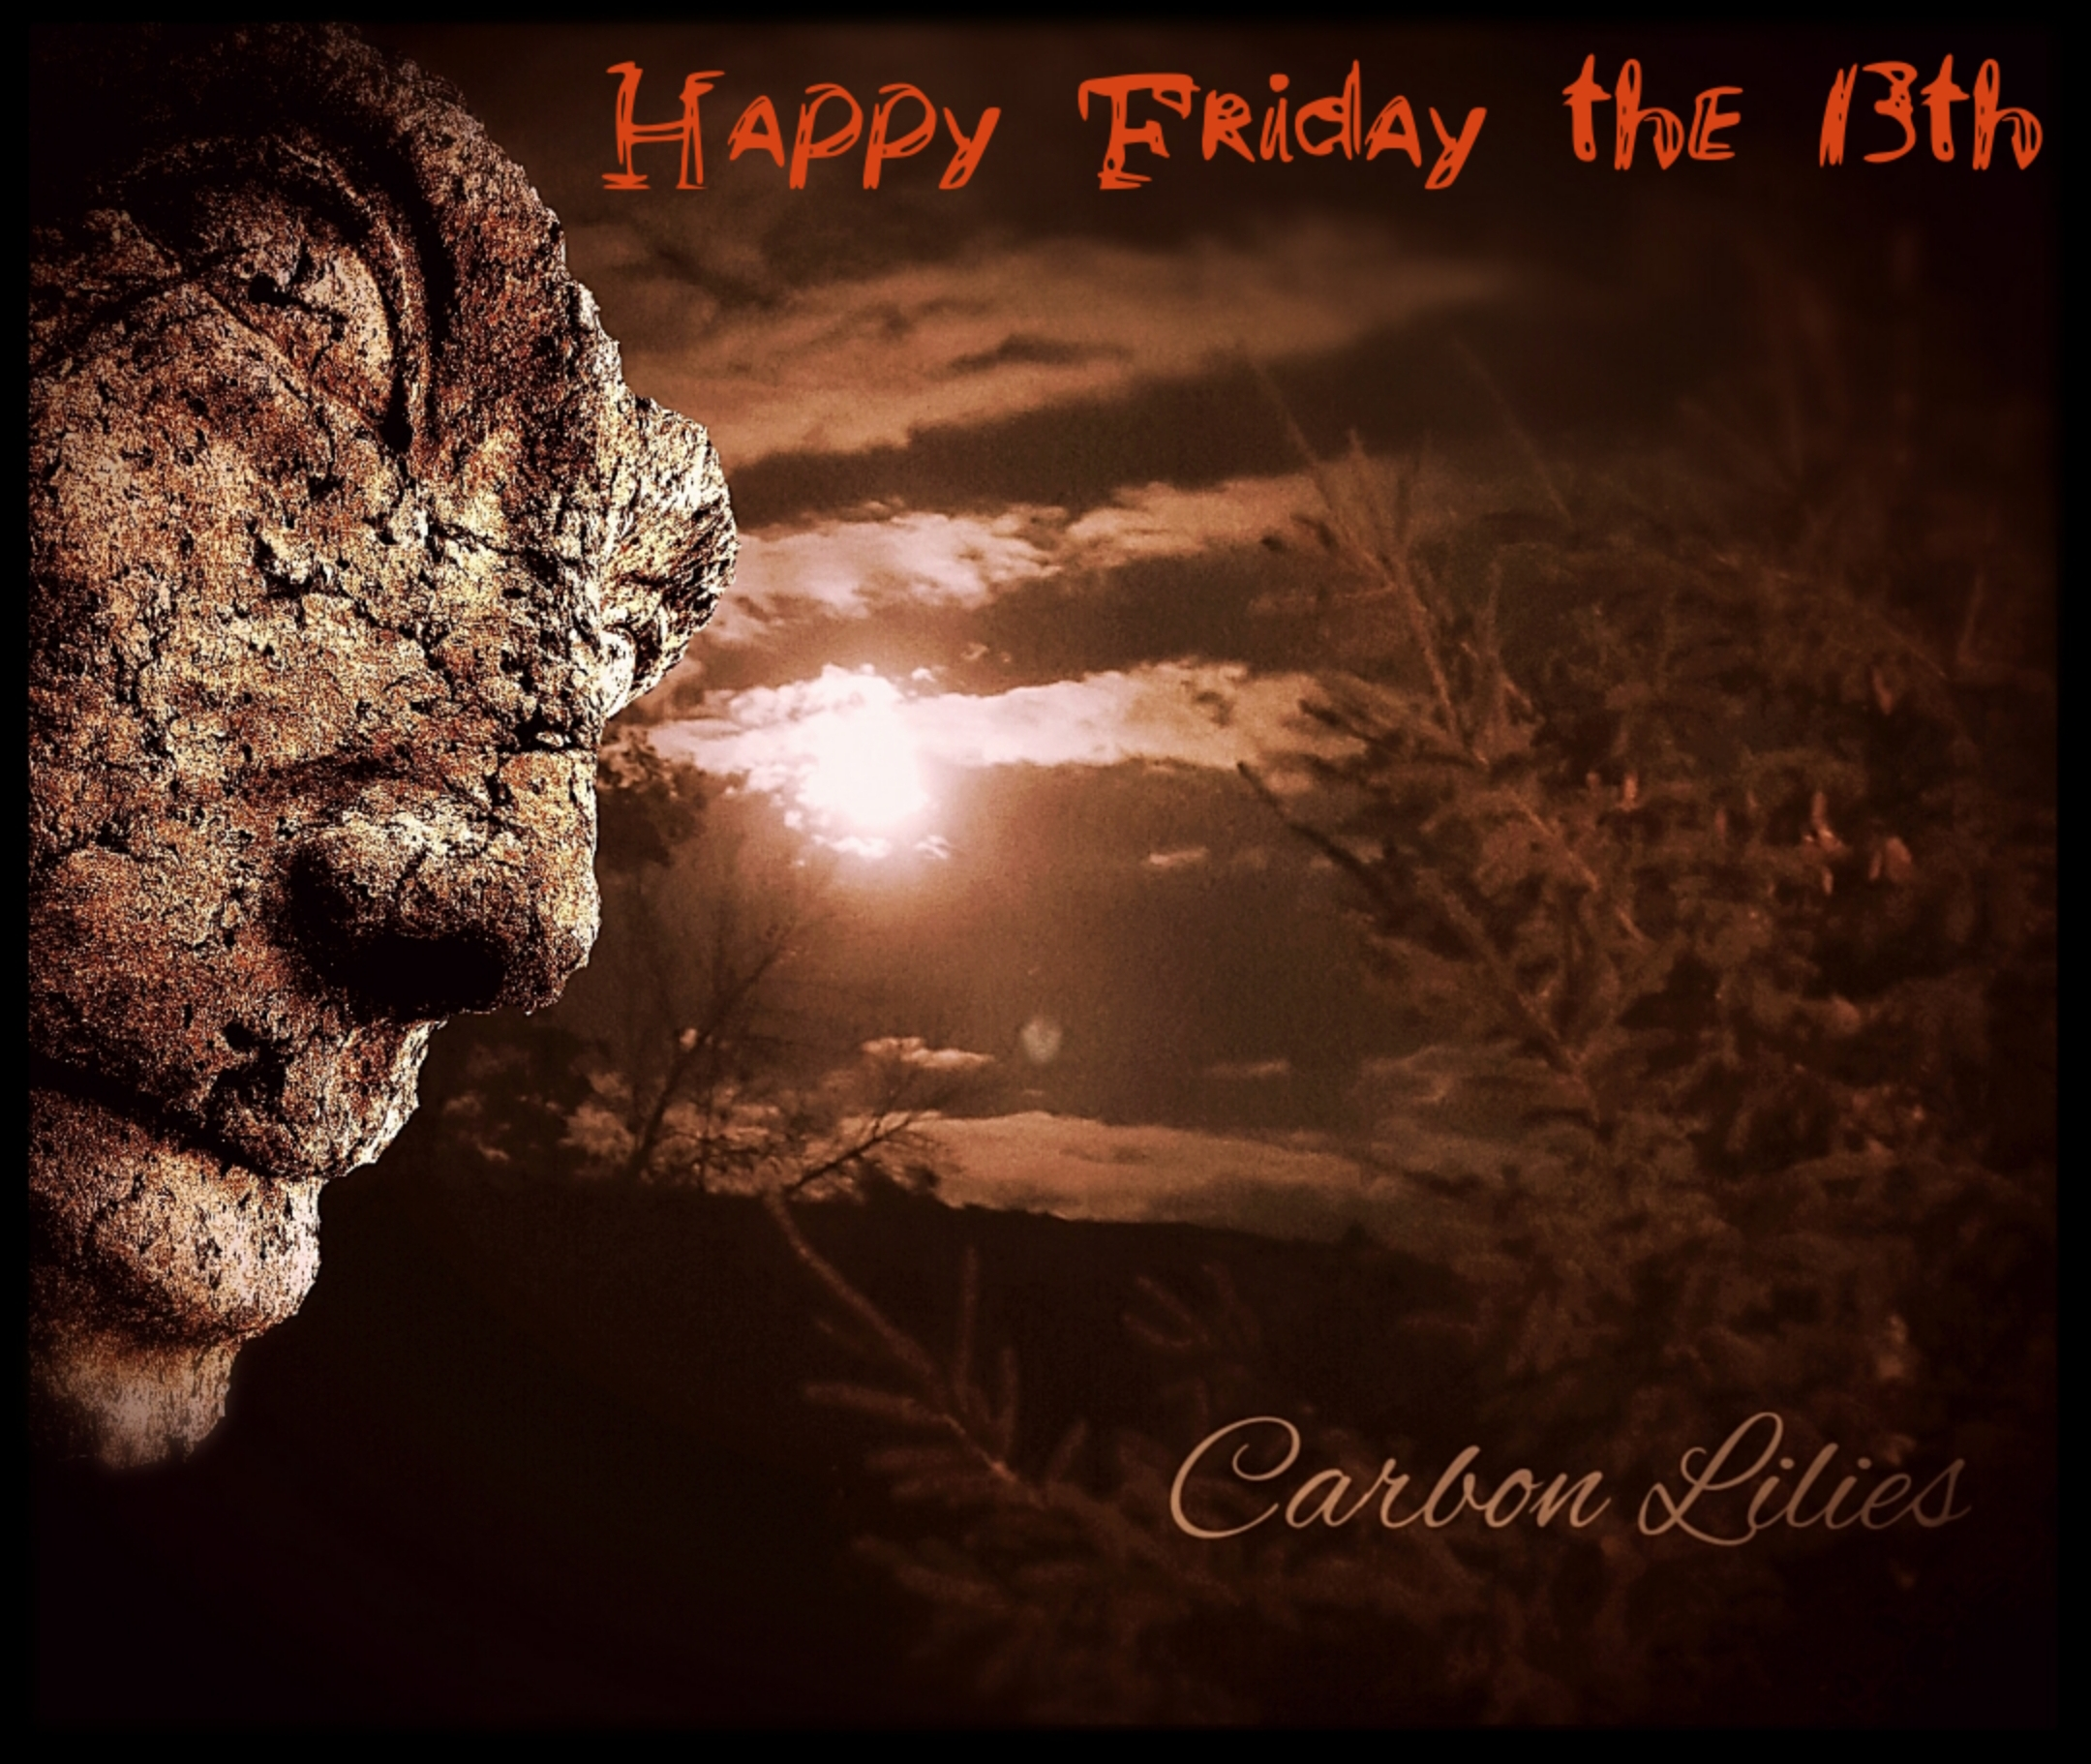 We have always had only the best of luck on Friday the 13th. We can only hope that you find the same. Have a wonderful Friday the 13th.